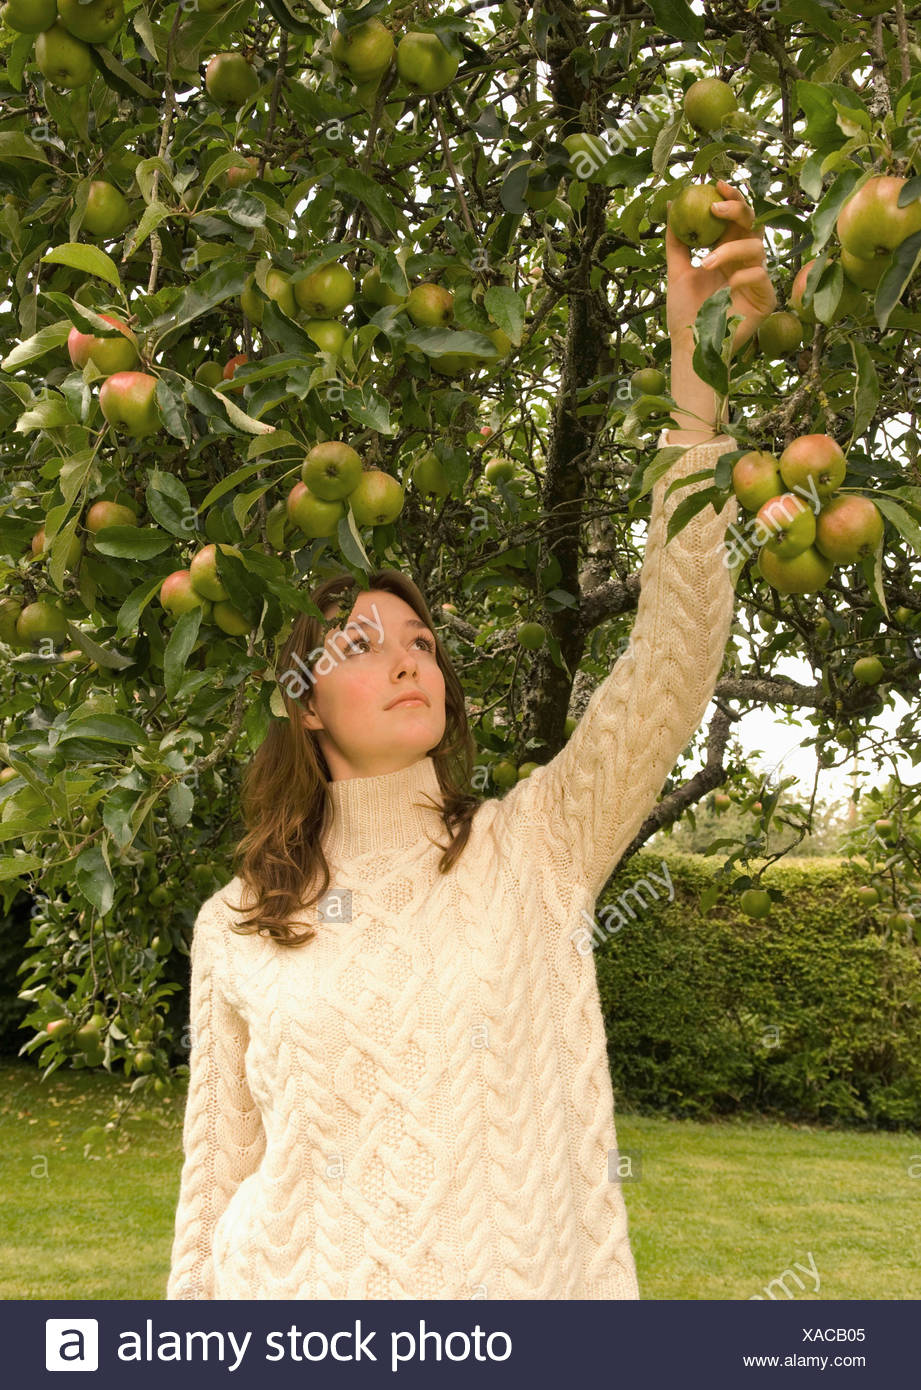 A female picking an apple from a tree - Stock Image